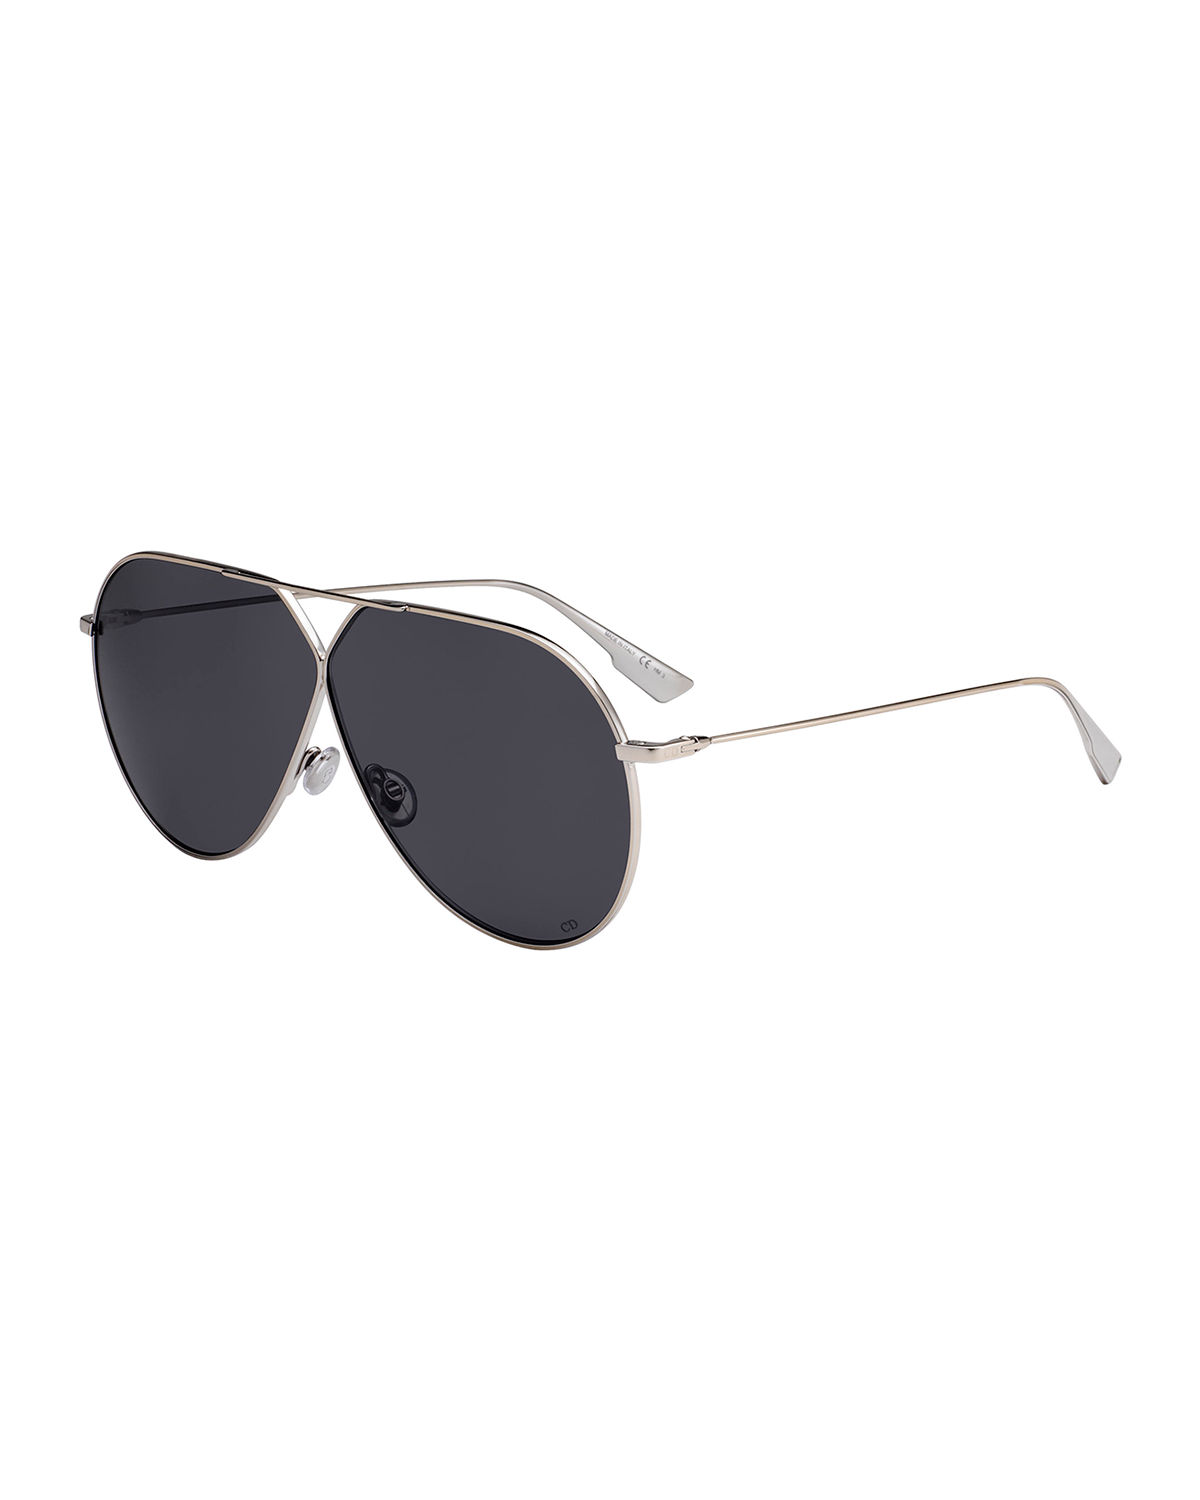 9808915ef1303 Dior Stell3 Mirrored Aviator Sunglasses